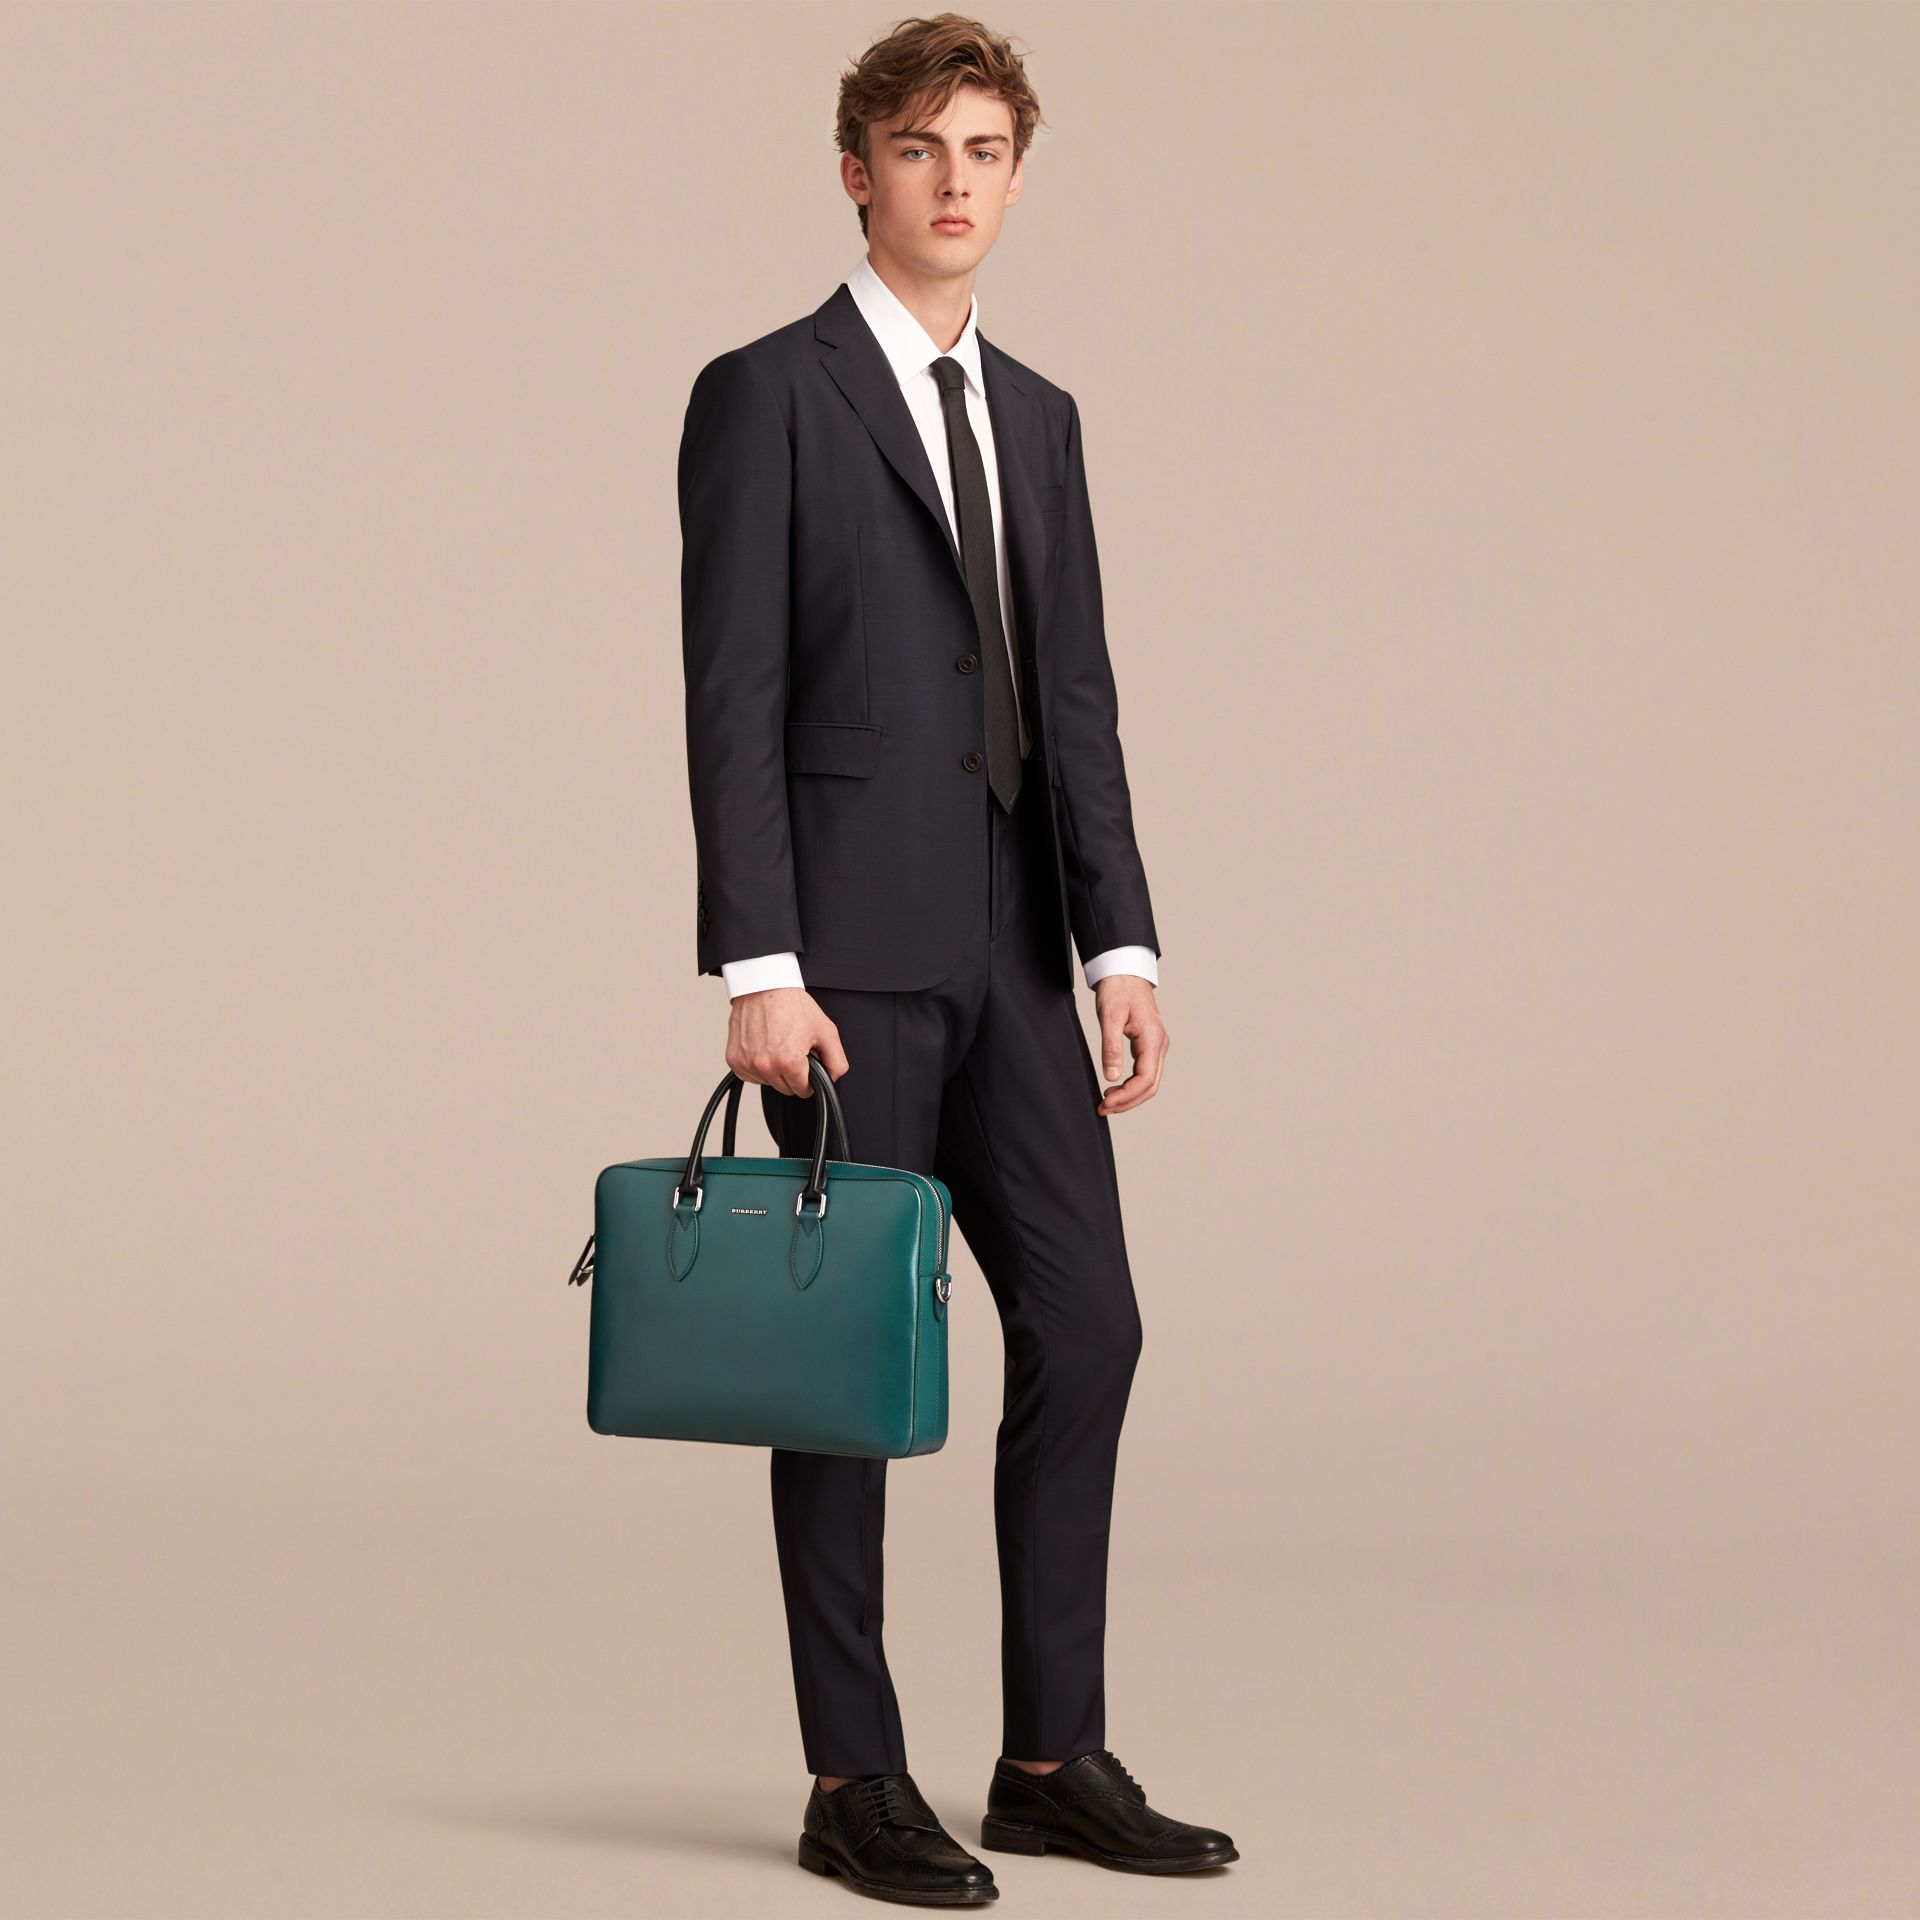 London Leather Briefcase in Dark Teal/black - Men | Burberry - gallery image 3